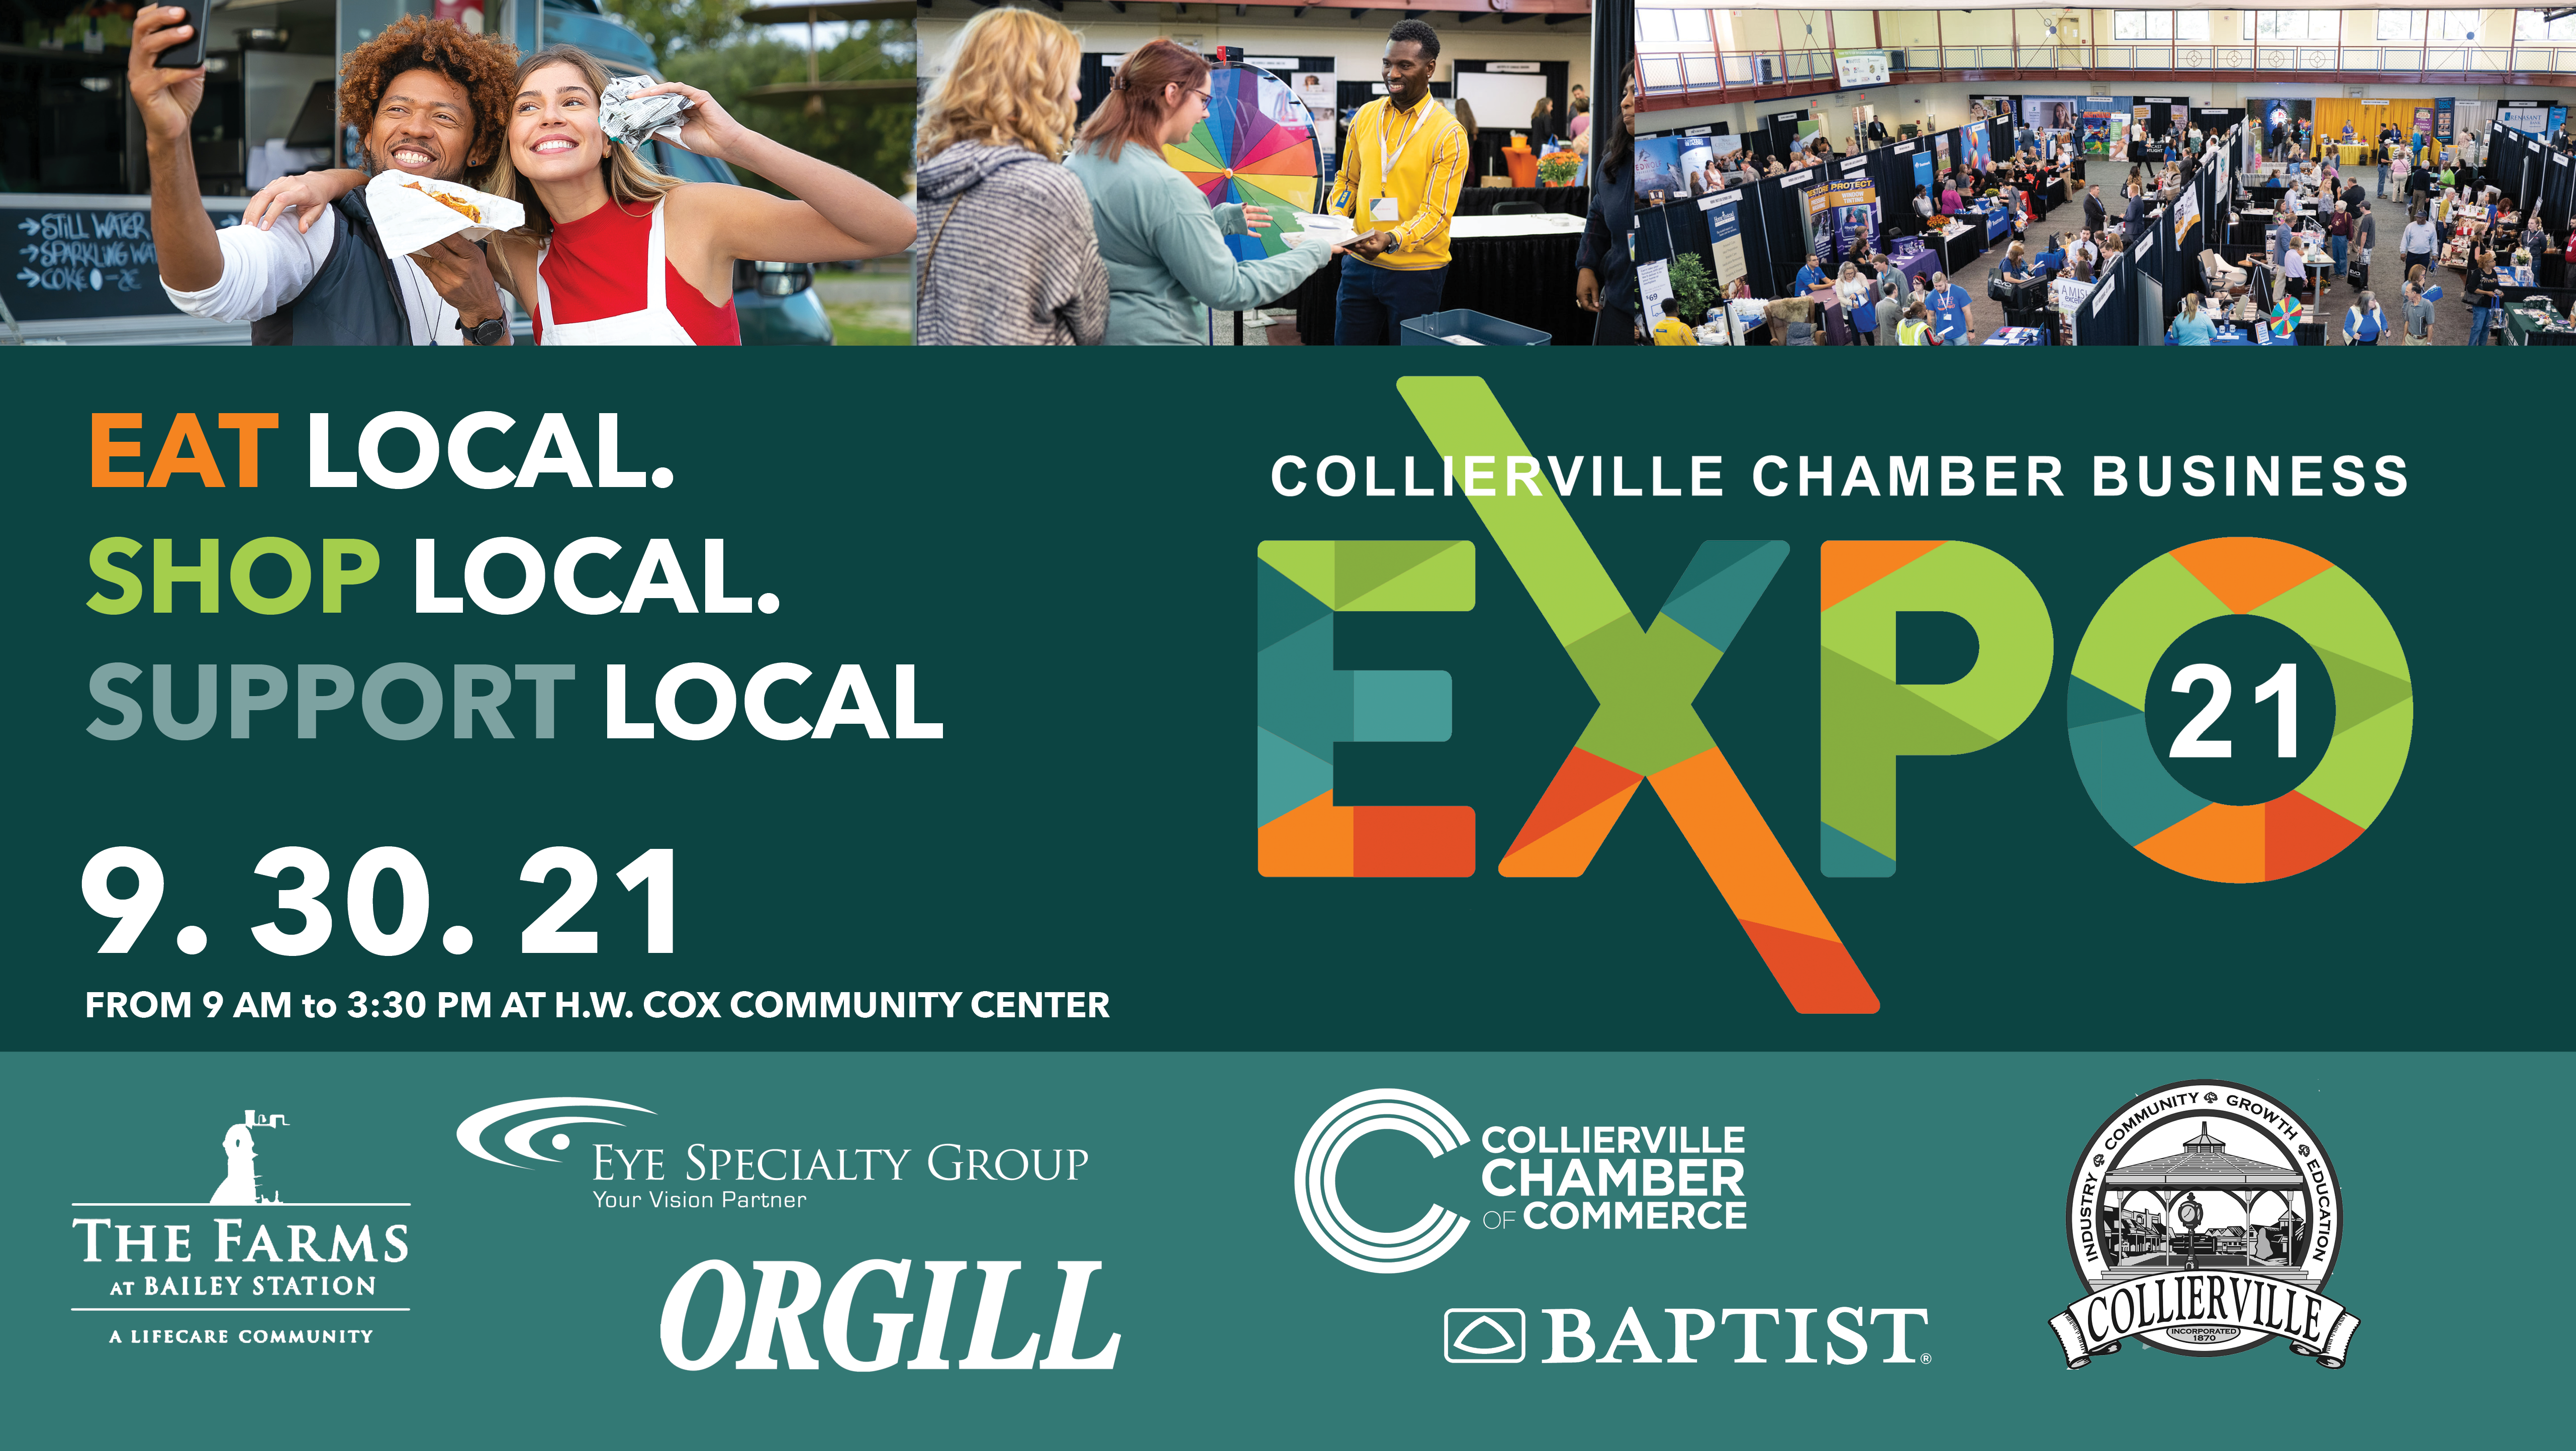 Local Business Gears Up for Largest Community Showcase in the Mid-South: Eat Local, Shop Local, and Support Local